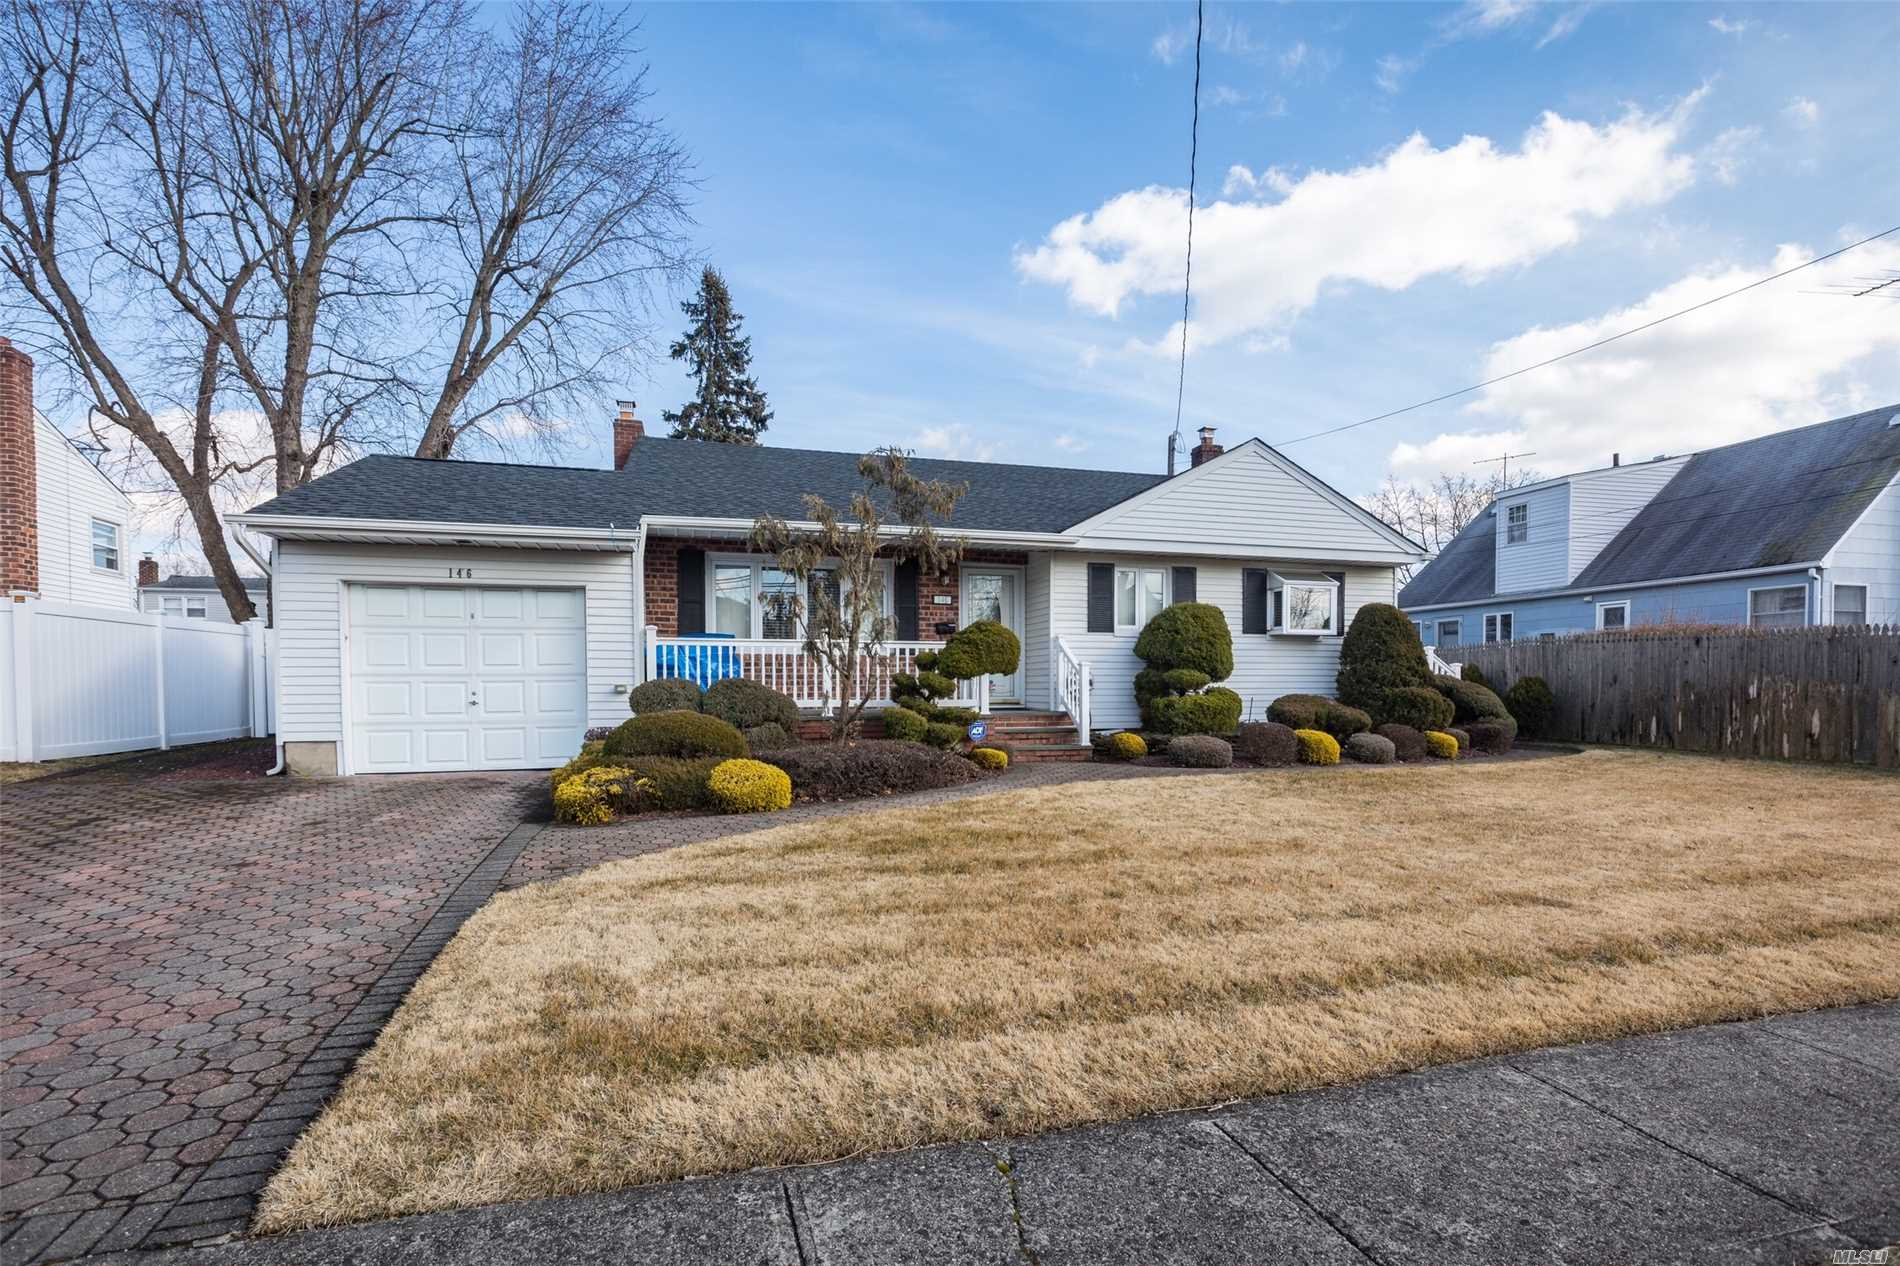 This Is The One You Have Been Waiting For! Mrs. Clean Is Moving Out. This Beautiful Split Boast A Huge Family Room, 3 Bedrooms 1.5 Bath, 6 Year Old Boiler, 4Yr Old Roof, Paved Driveway And Rear Patio, A New Ductless 1st Floor Ac, A New Stainless Stove And Frig, And A Large Den. Way Too Much To List... Come See For Yourself. The Rear Shed Is A Gift.